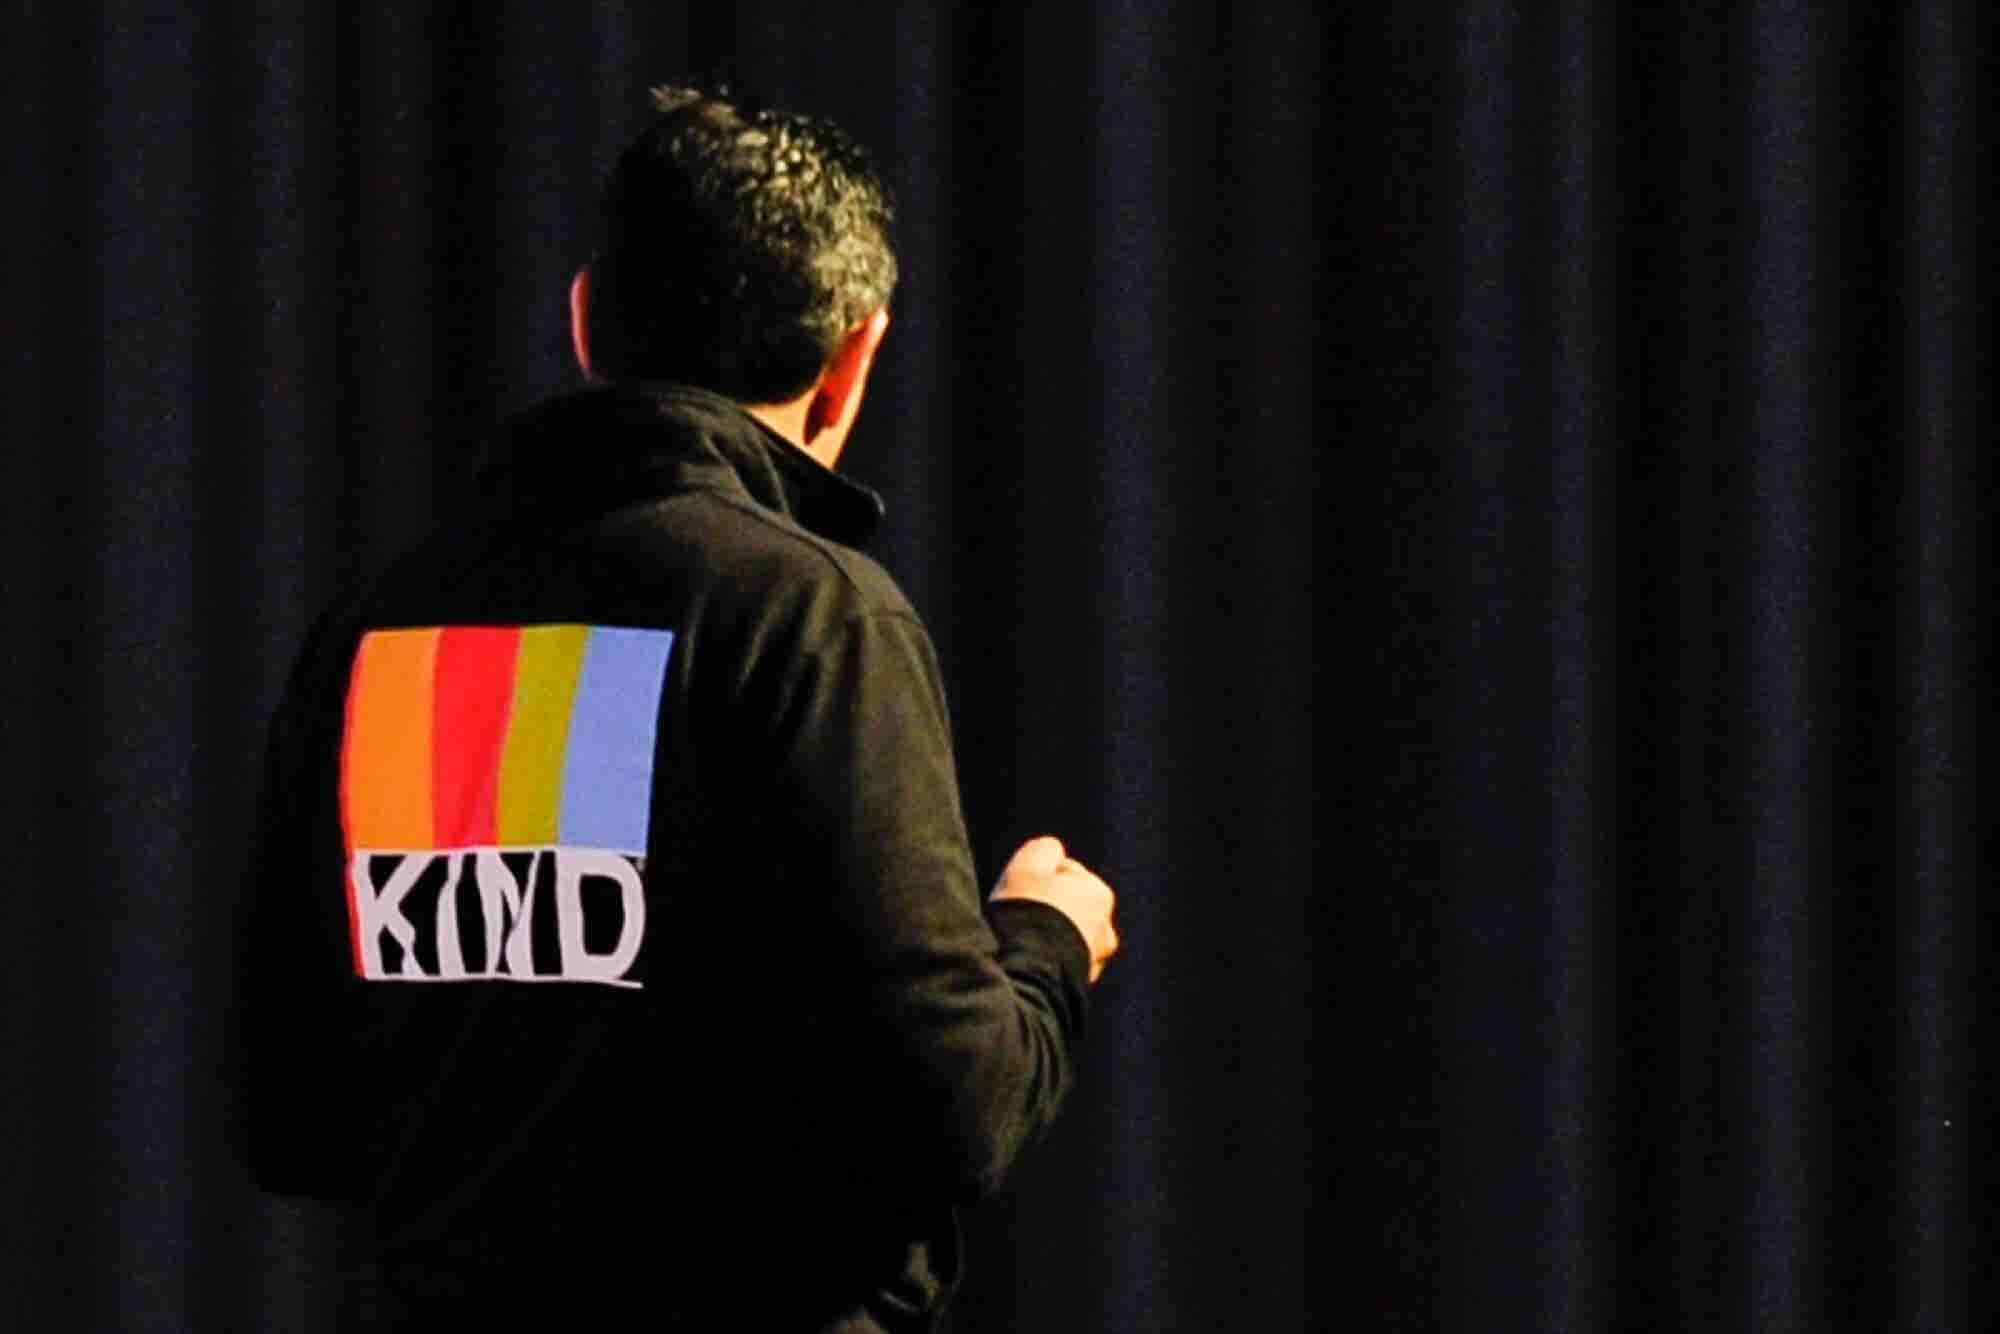 The KIND Founder's 10 Tenets of Entrepreneurship